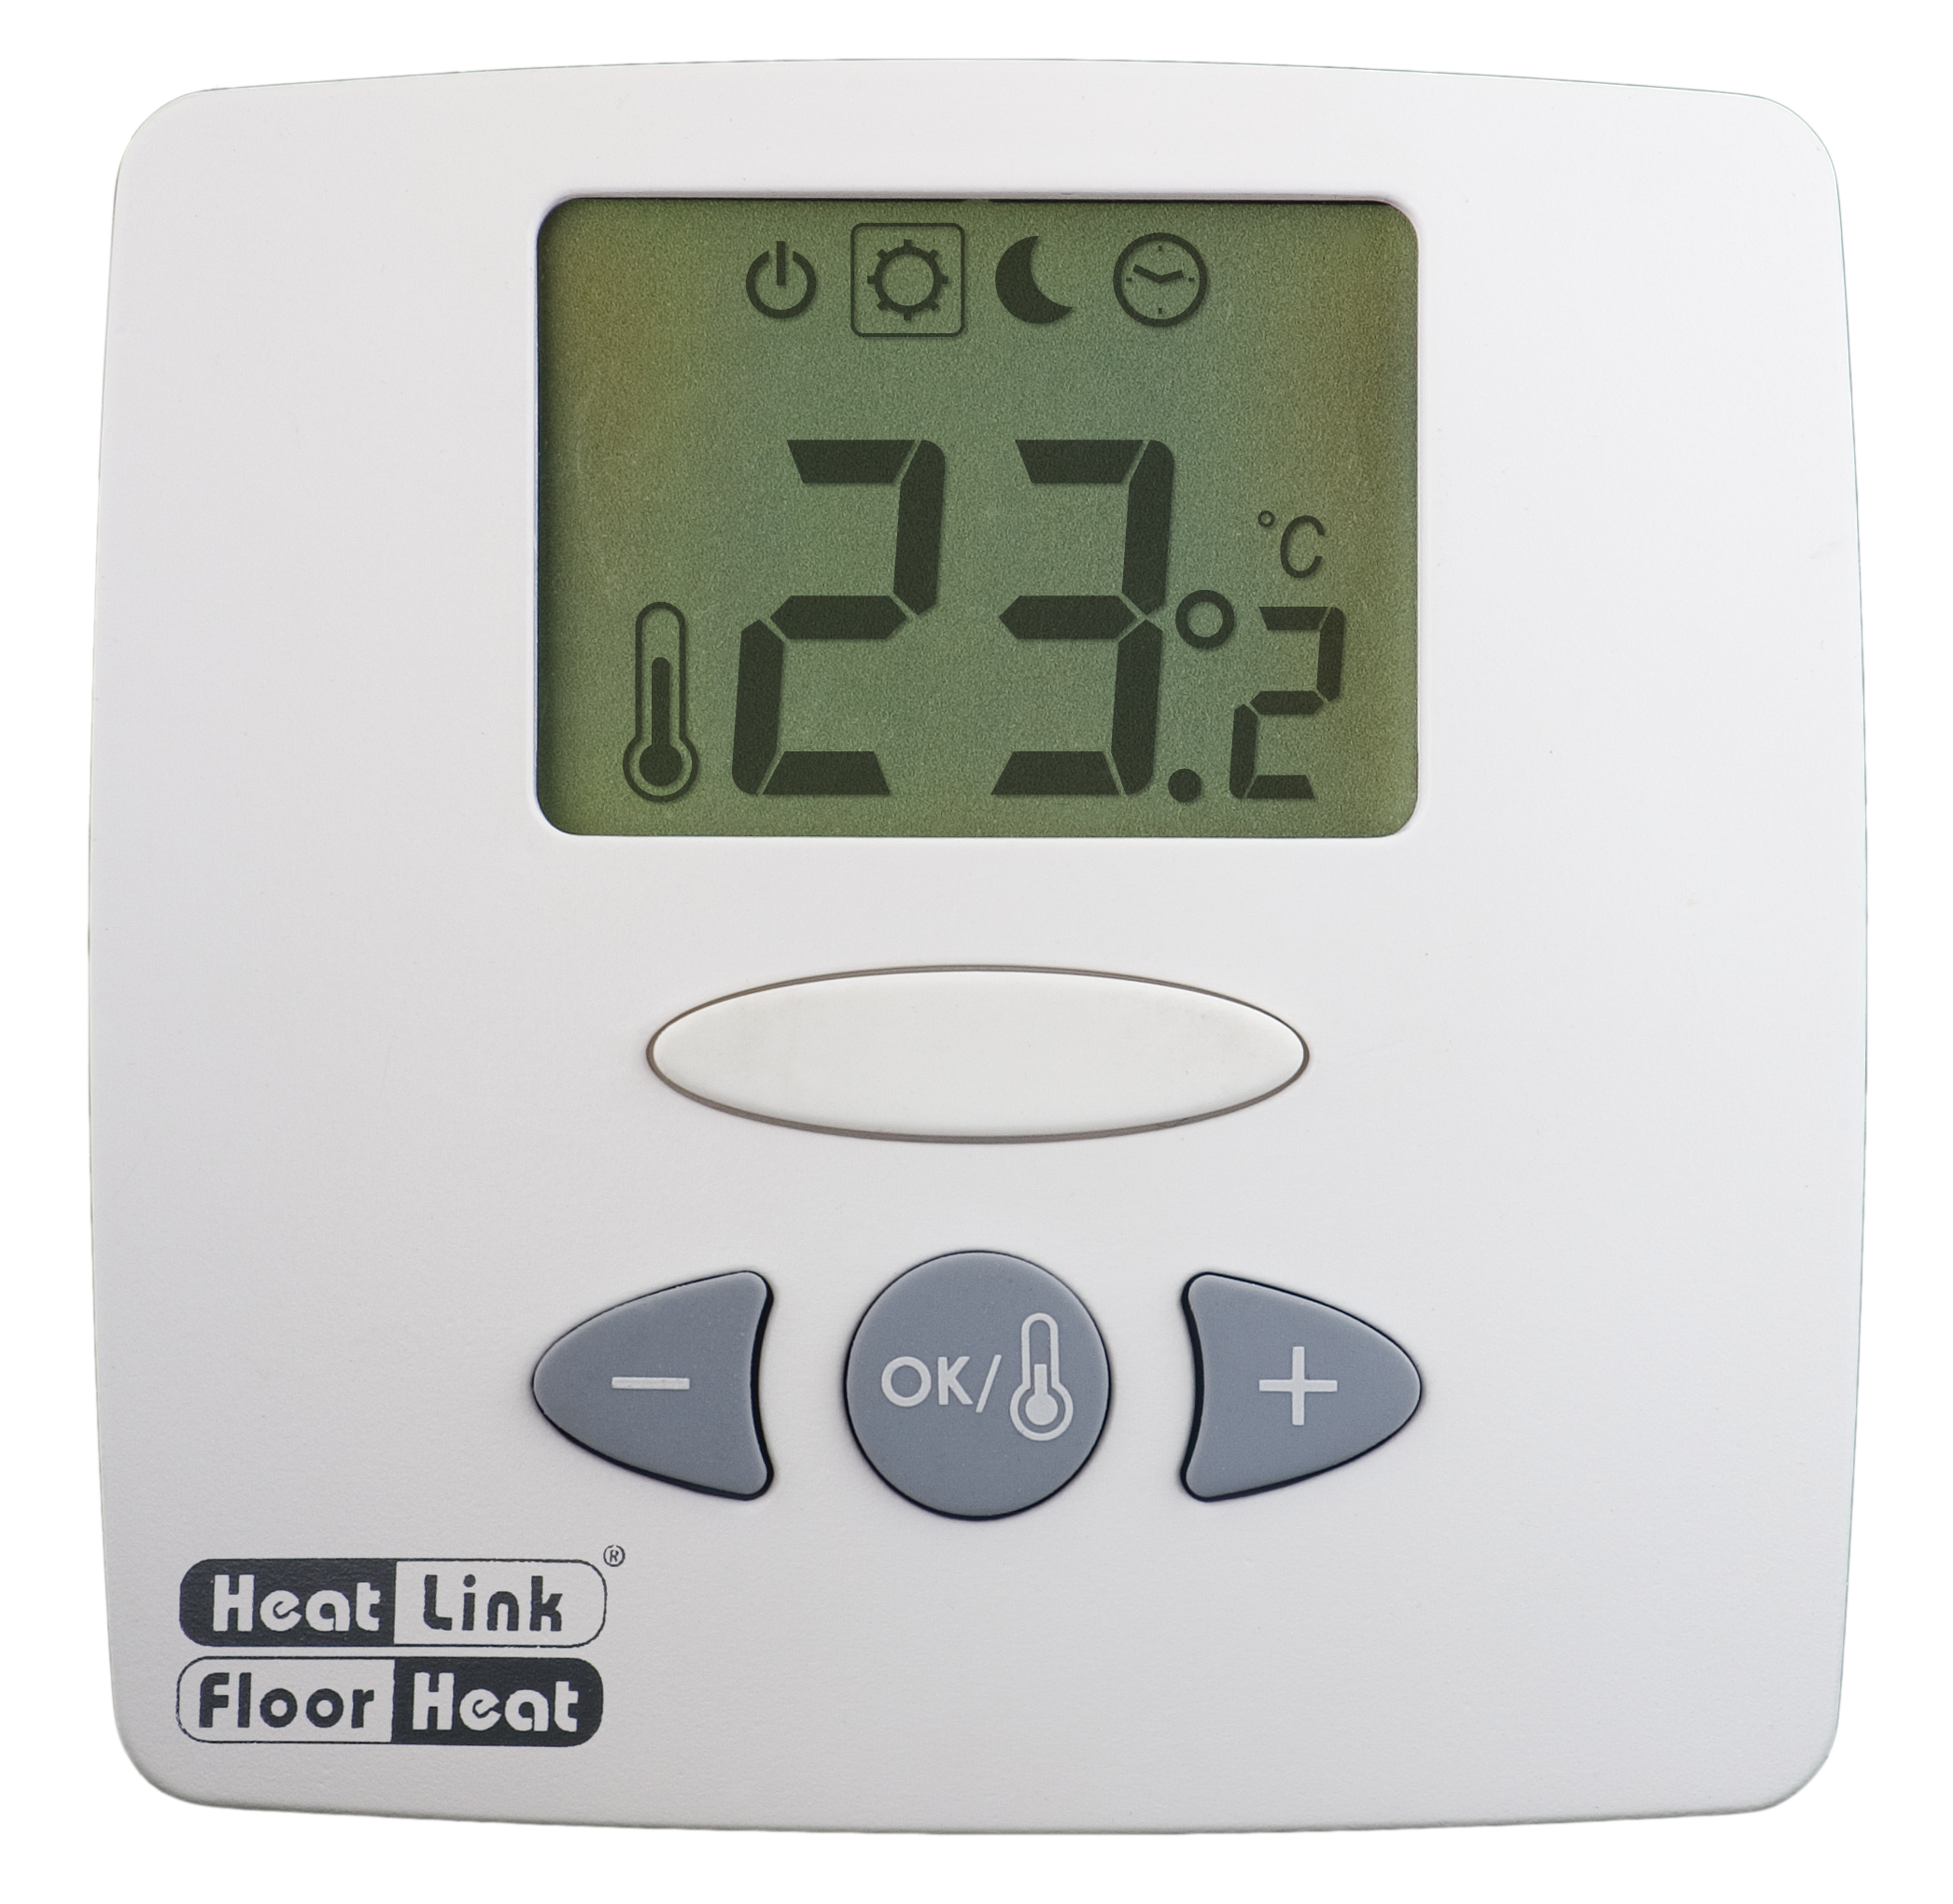 Heat Link Floor Heat Thermostat Instructions